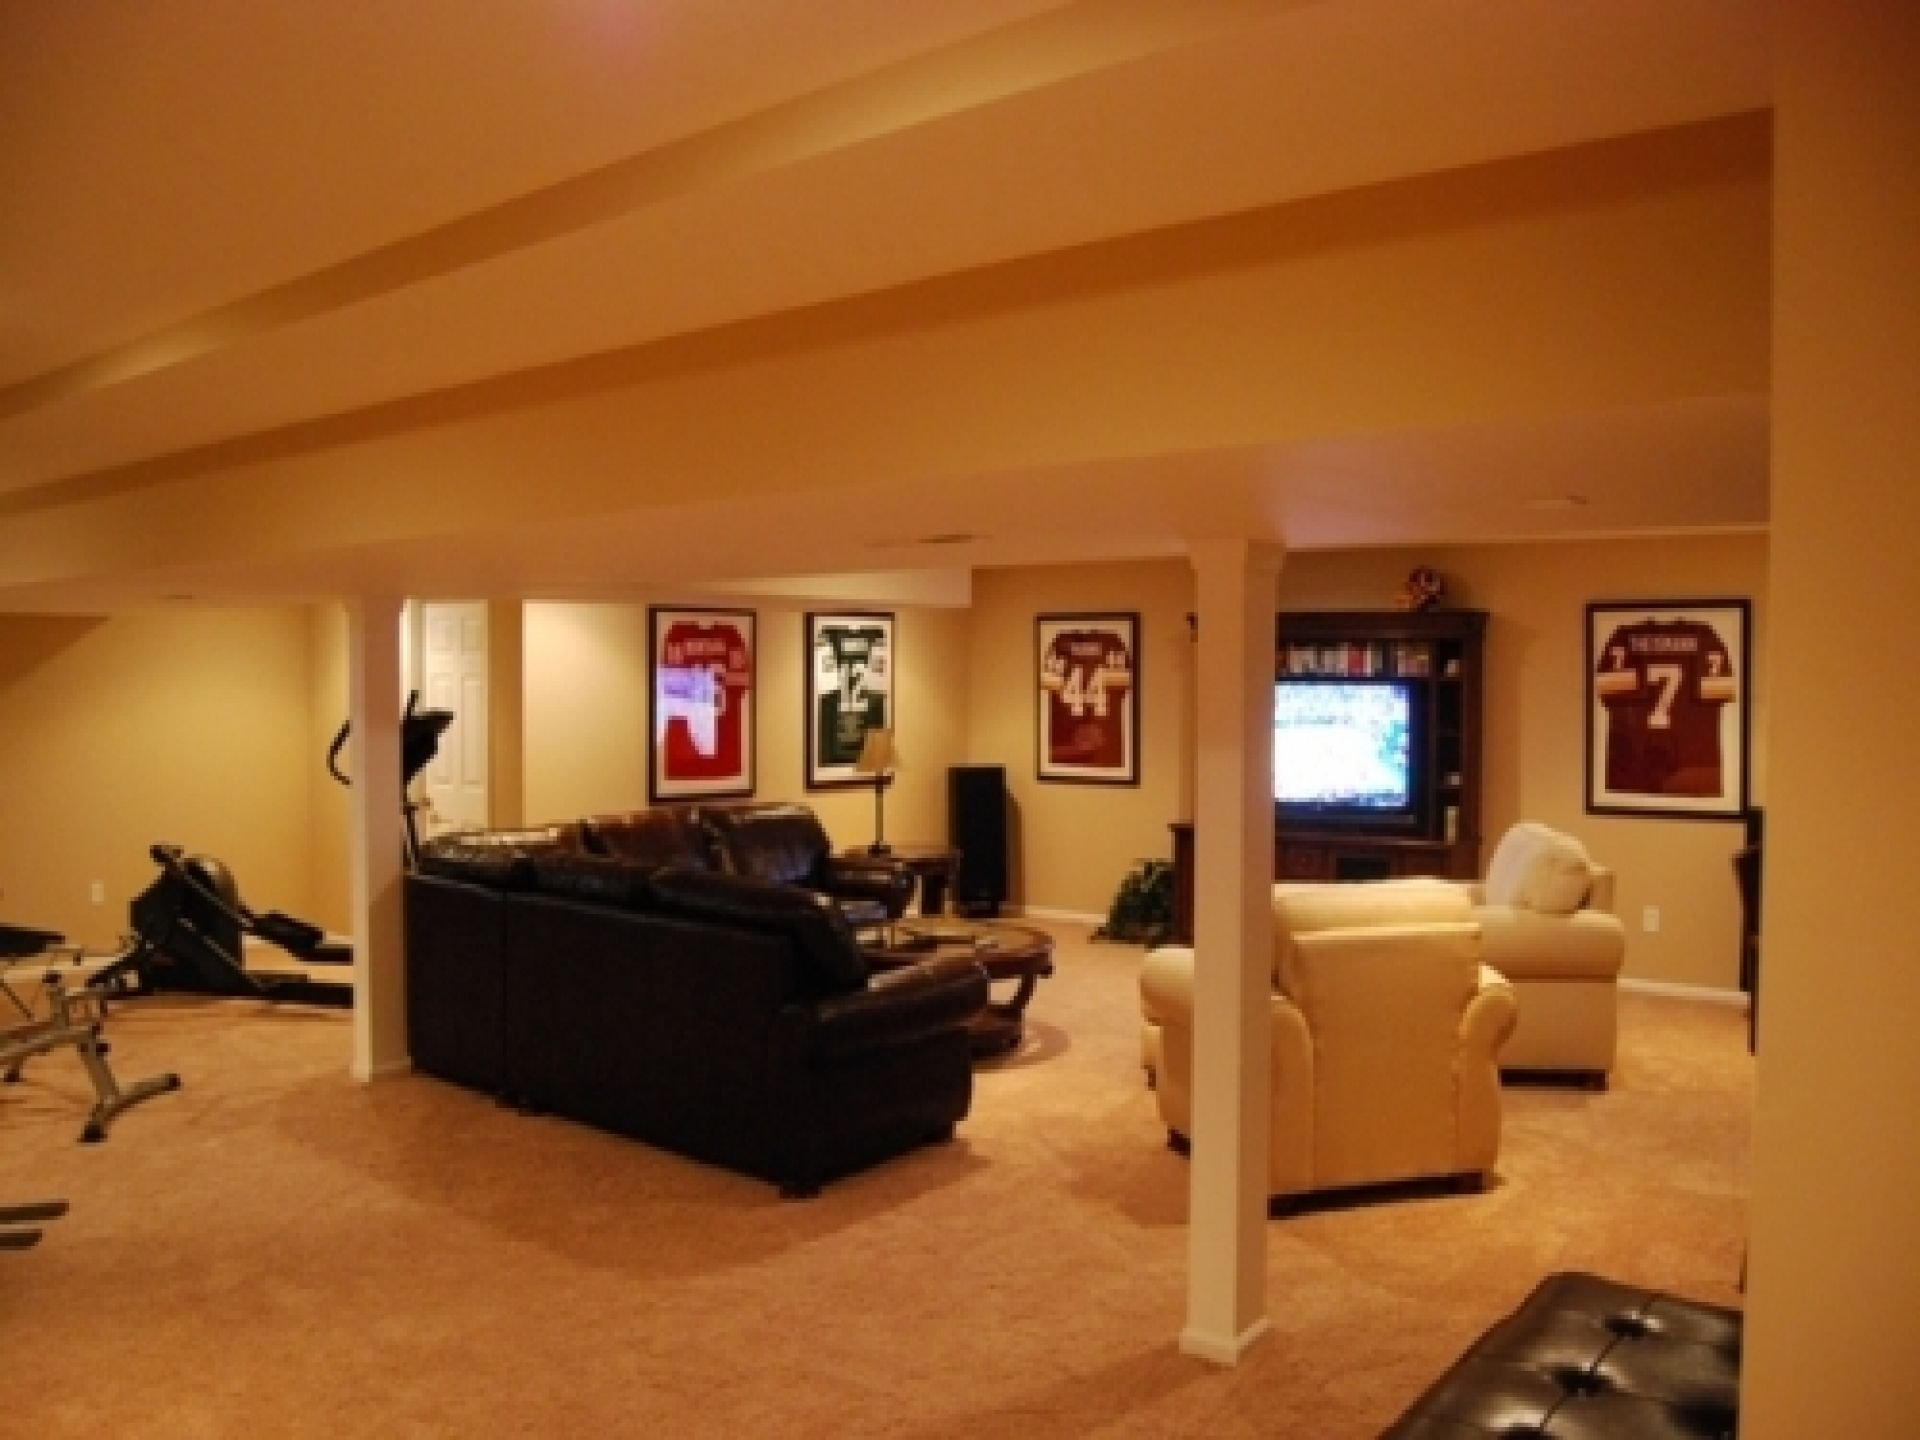 10 Stunning Finished Basement Ideas On A Budget basement ideas on a budget smalltowndjs morgan home 2020